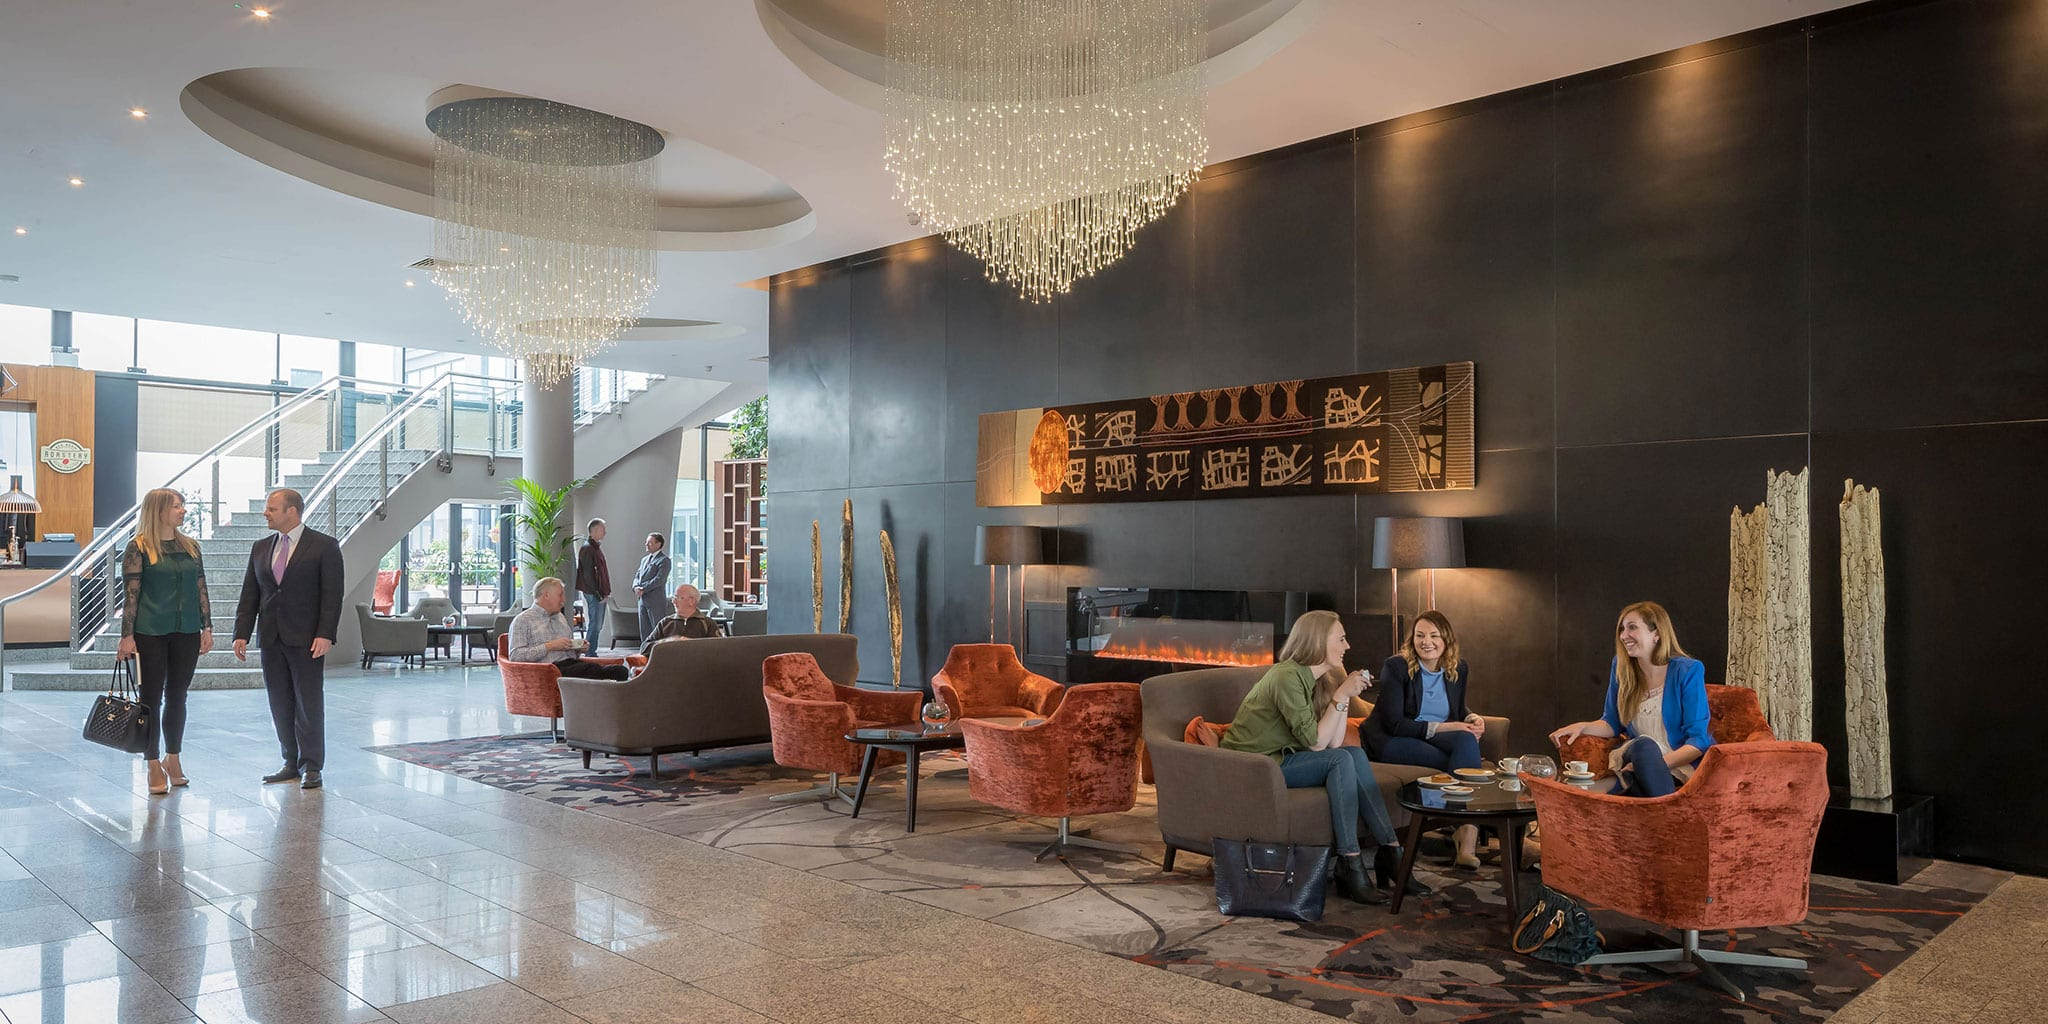 Hotels in Wexford | Wexford Hotels | Clayton Whites Hotel